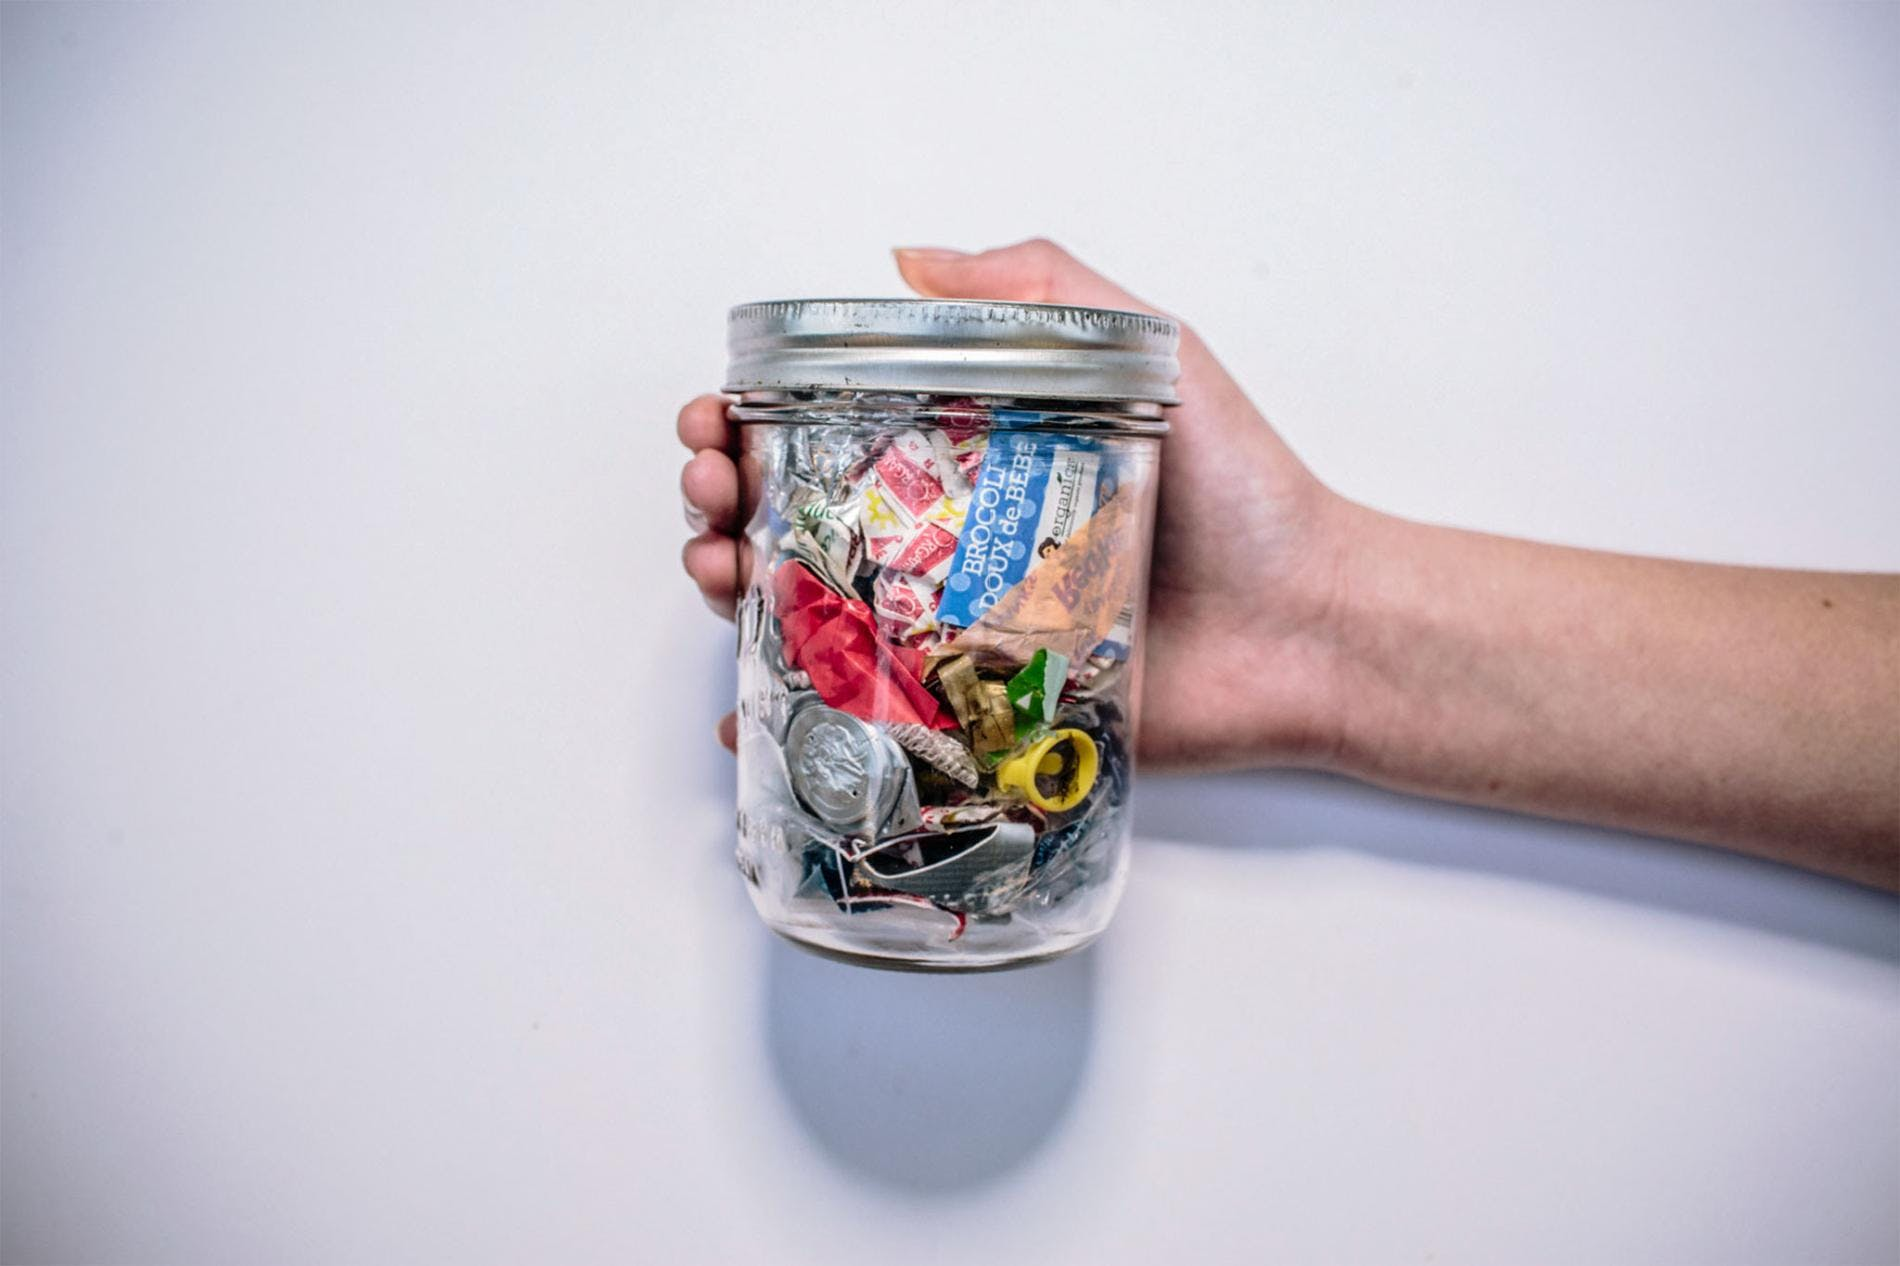 A person holding waste on a glass jar